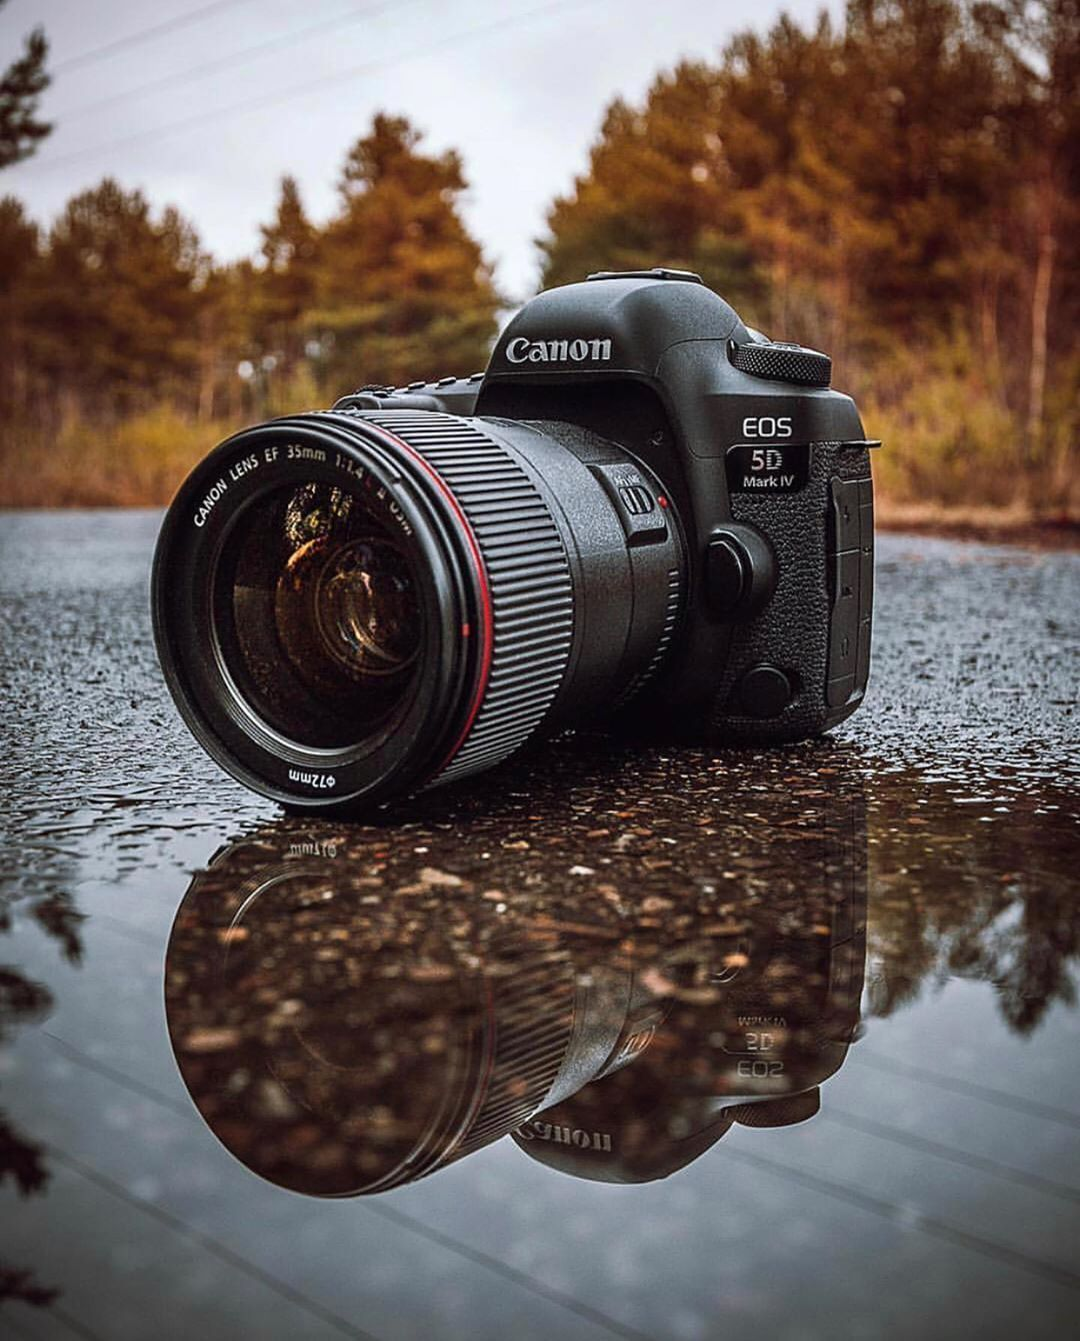 Canon Photography Wallpapers Top Free Canon Photography Backgrounds Wallpaperaccess